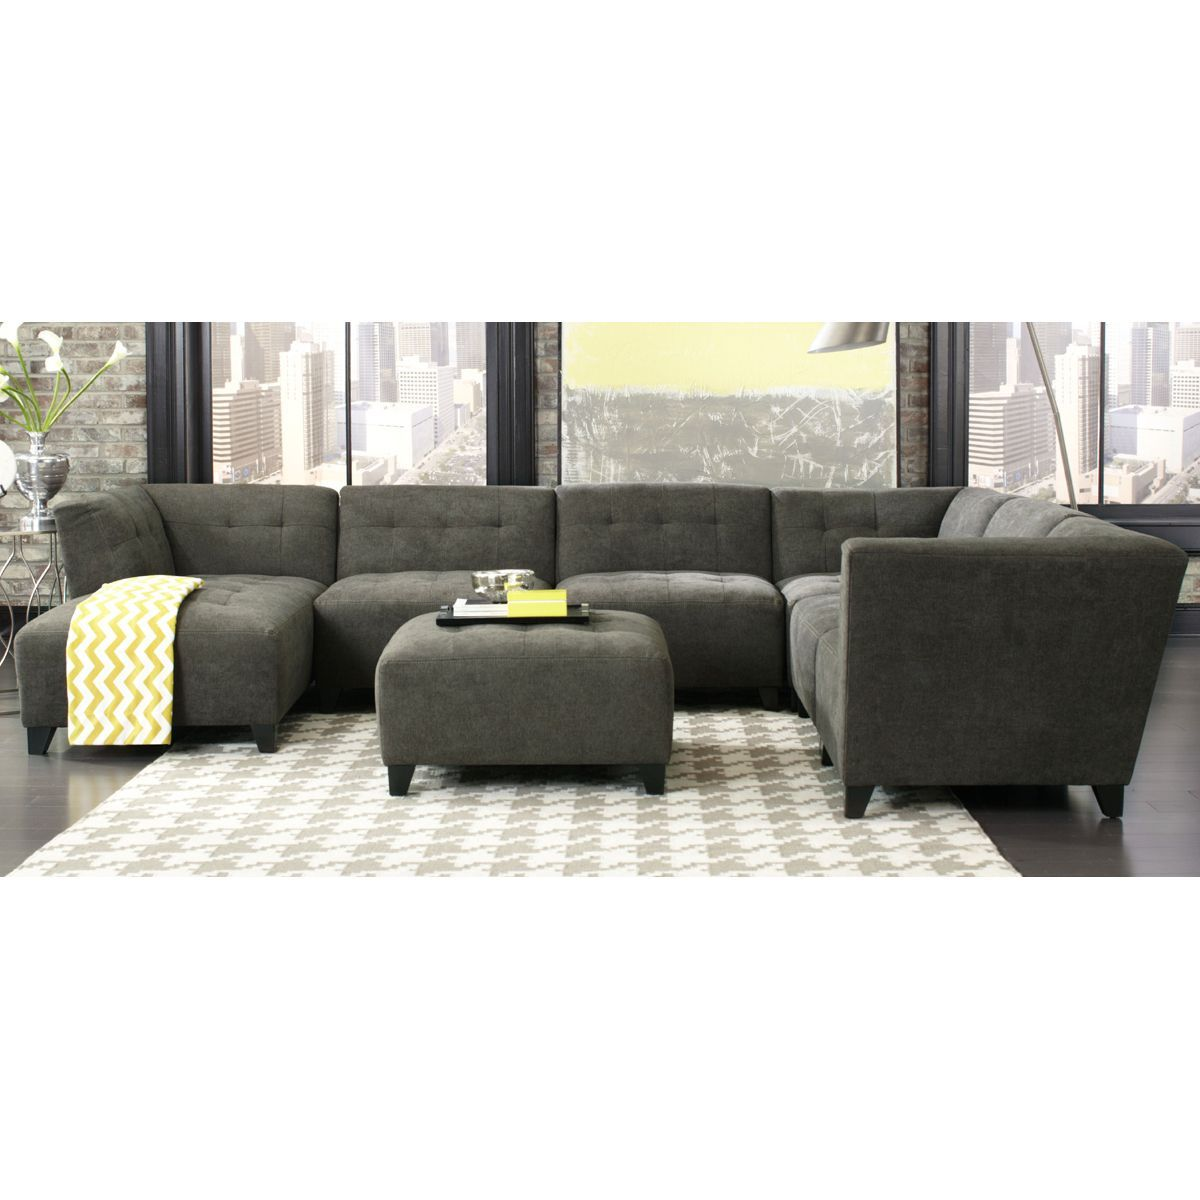 Page Rc Willey: Classic Modern Granite Gray 6 Piece Sectional Sofa